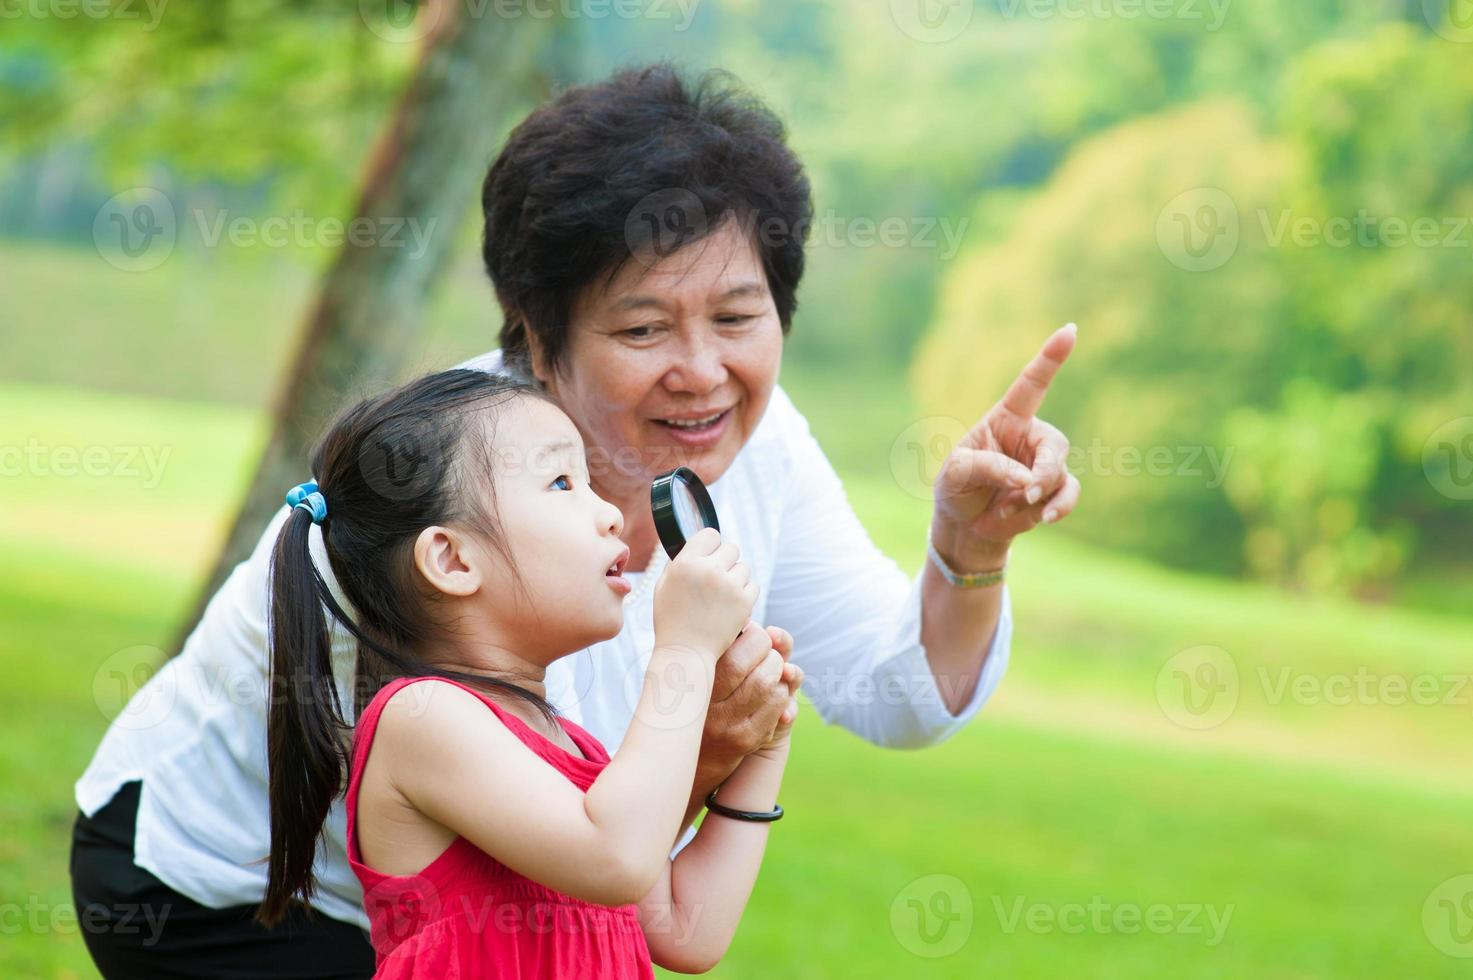 Grandmother and granddaughter pointing at something in park photo